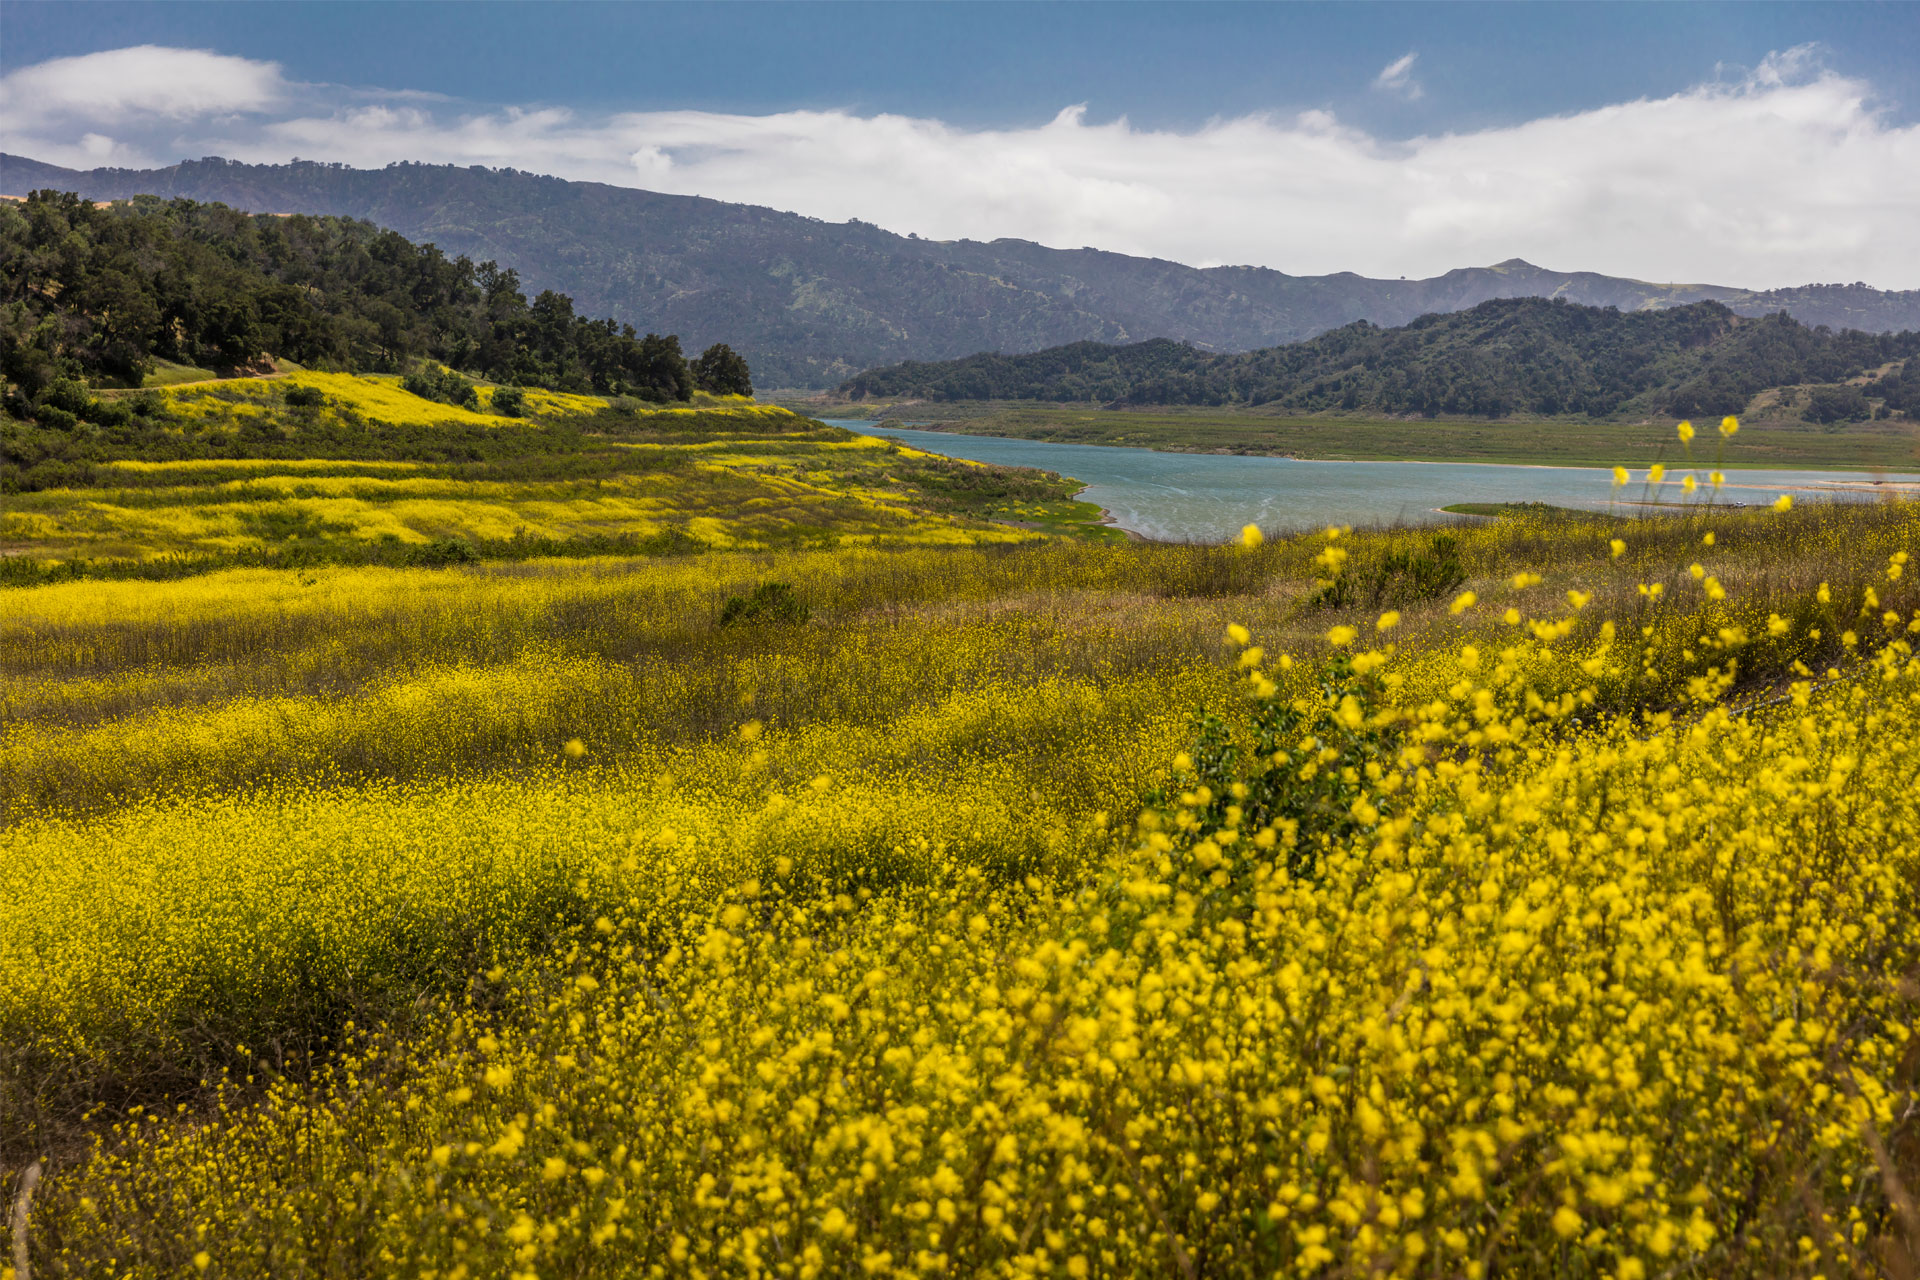 Ojai, California; Courtesy of Joseph Sohm/Shutterstock.com